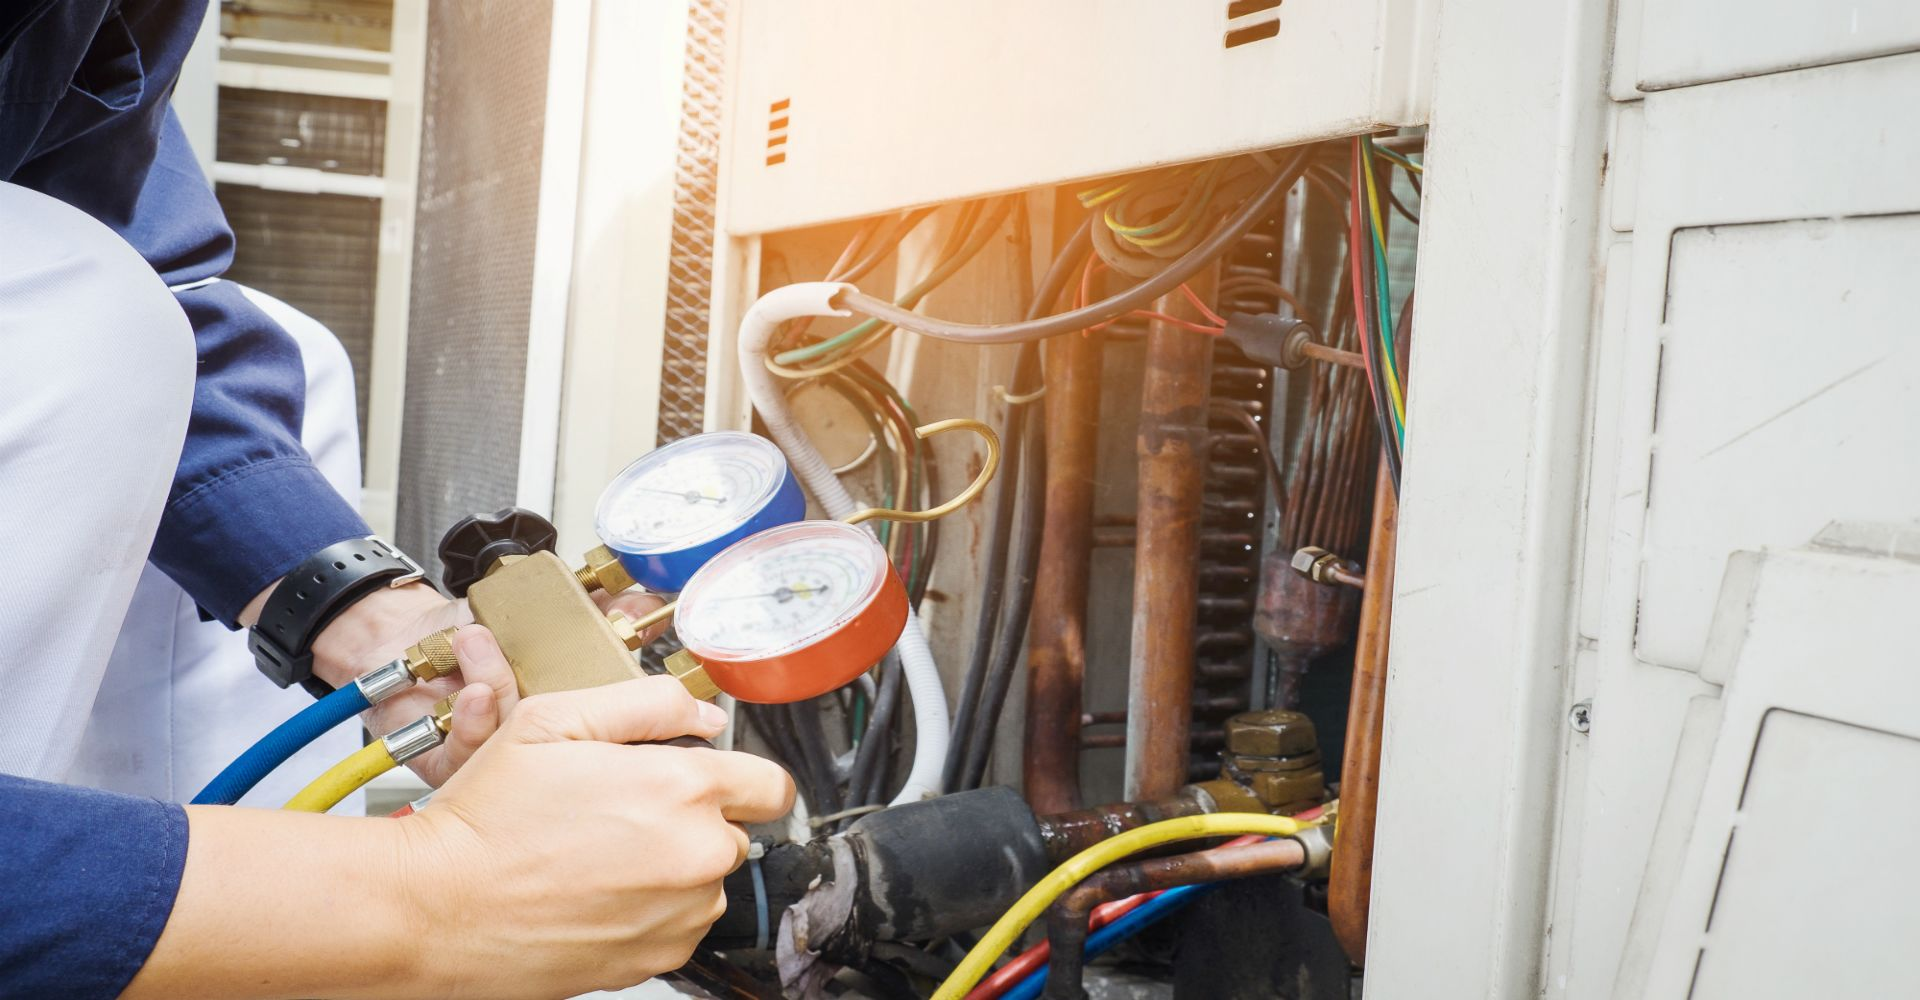 5 Common HVAC Issues That Require Repair And Fullon